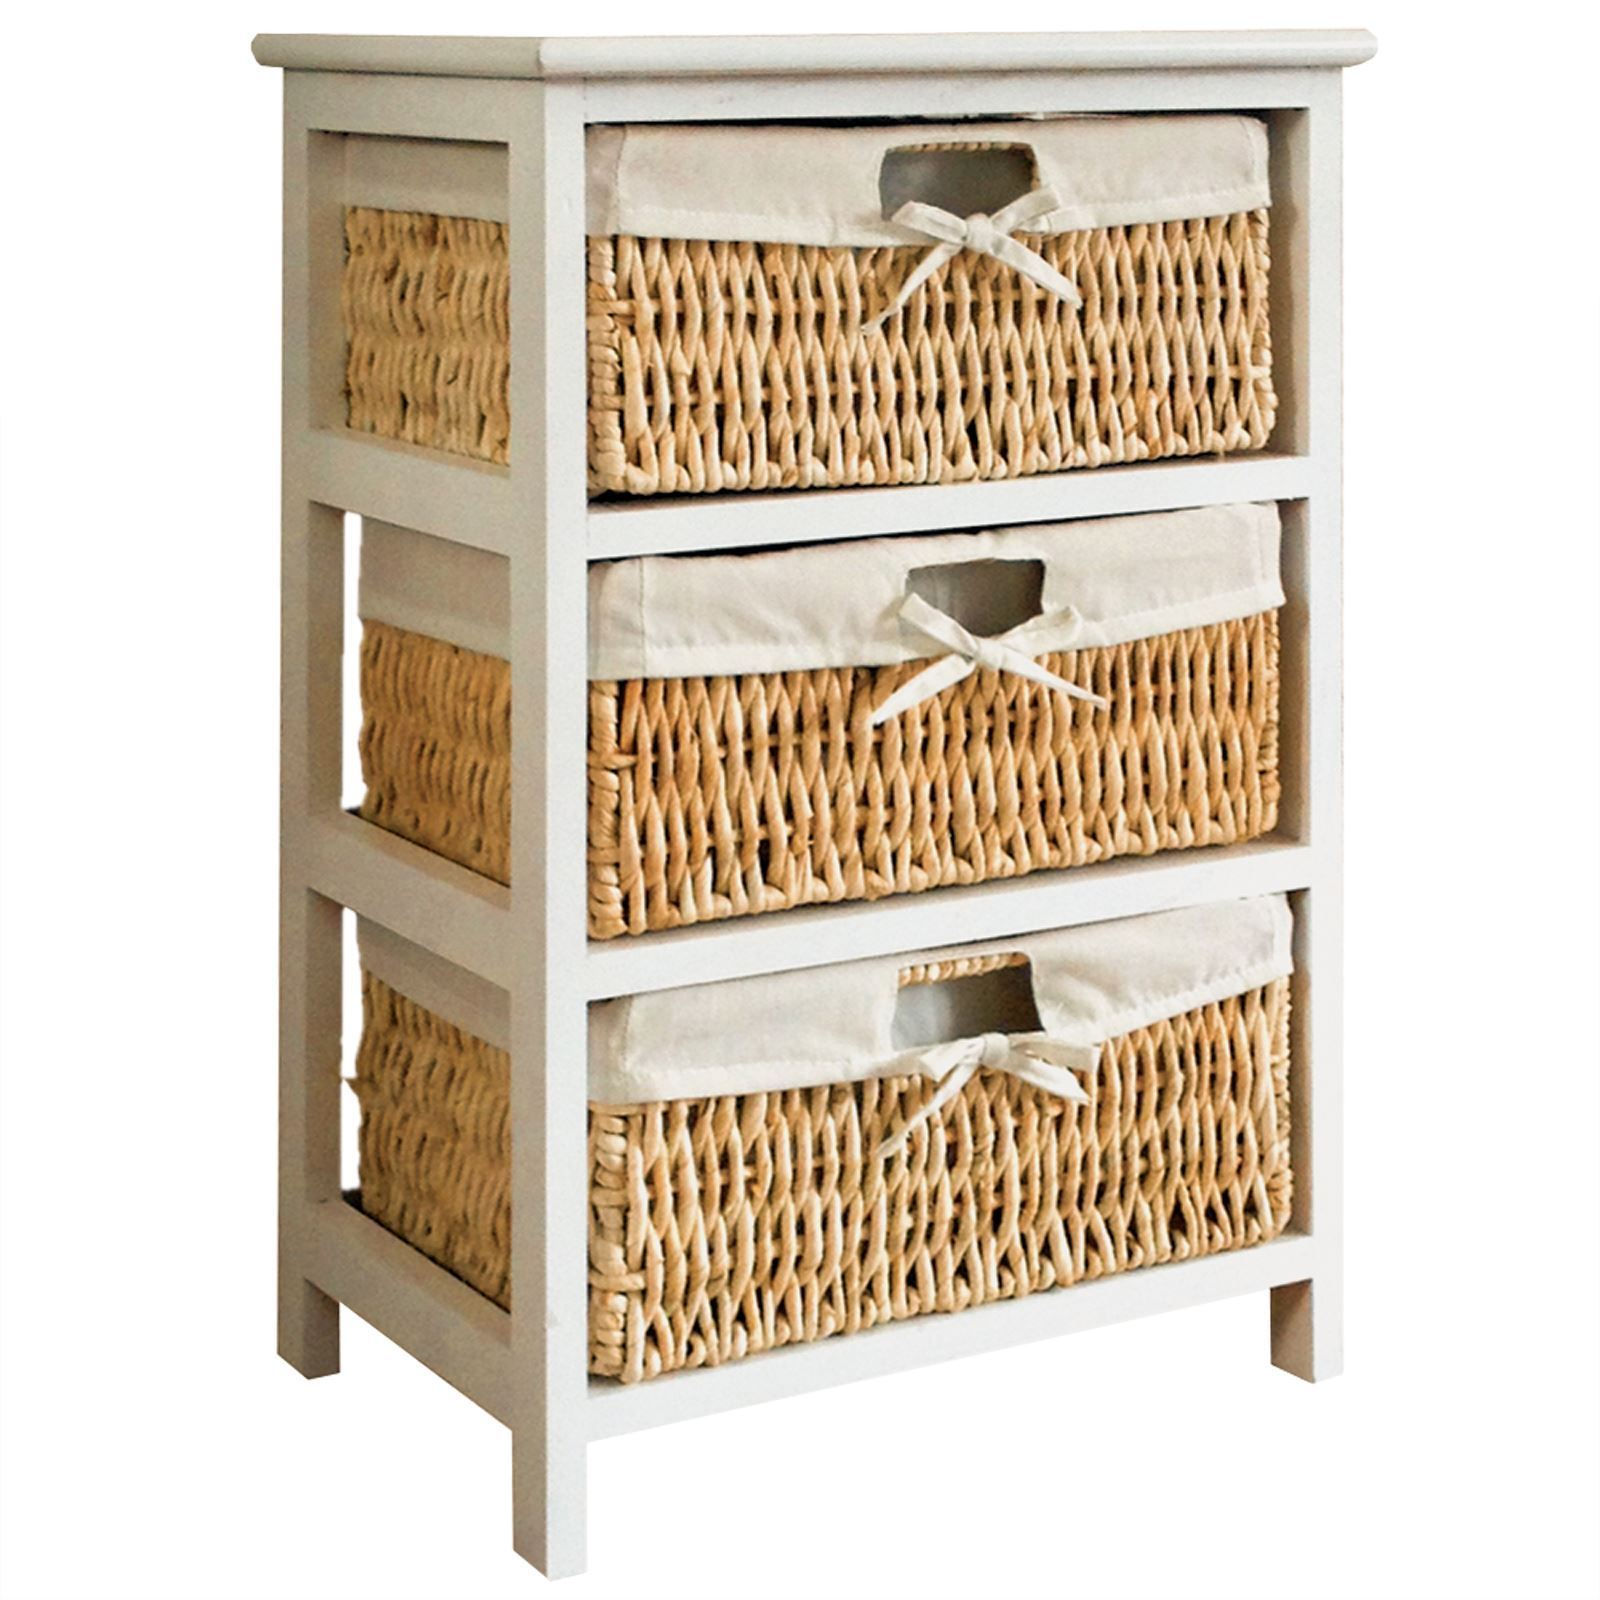 storage cabinet wood drawers retro from item jewelry level household on design organizer wooden drawer garden boxes chest hipsteen home in bins essentials